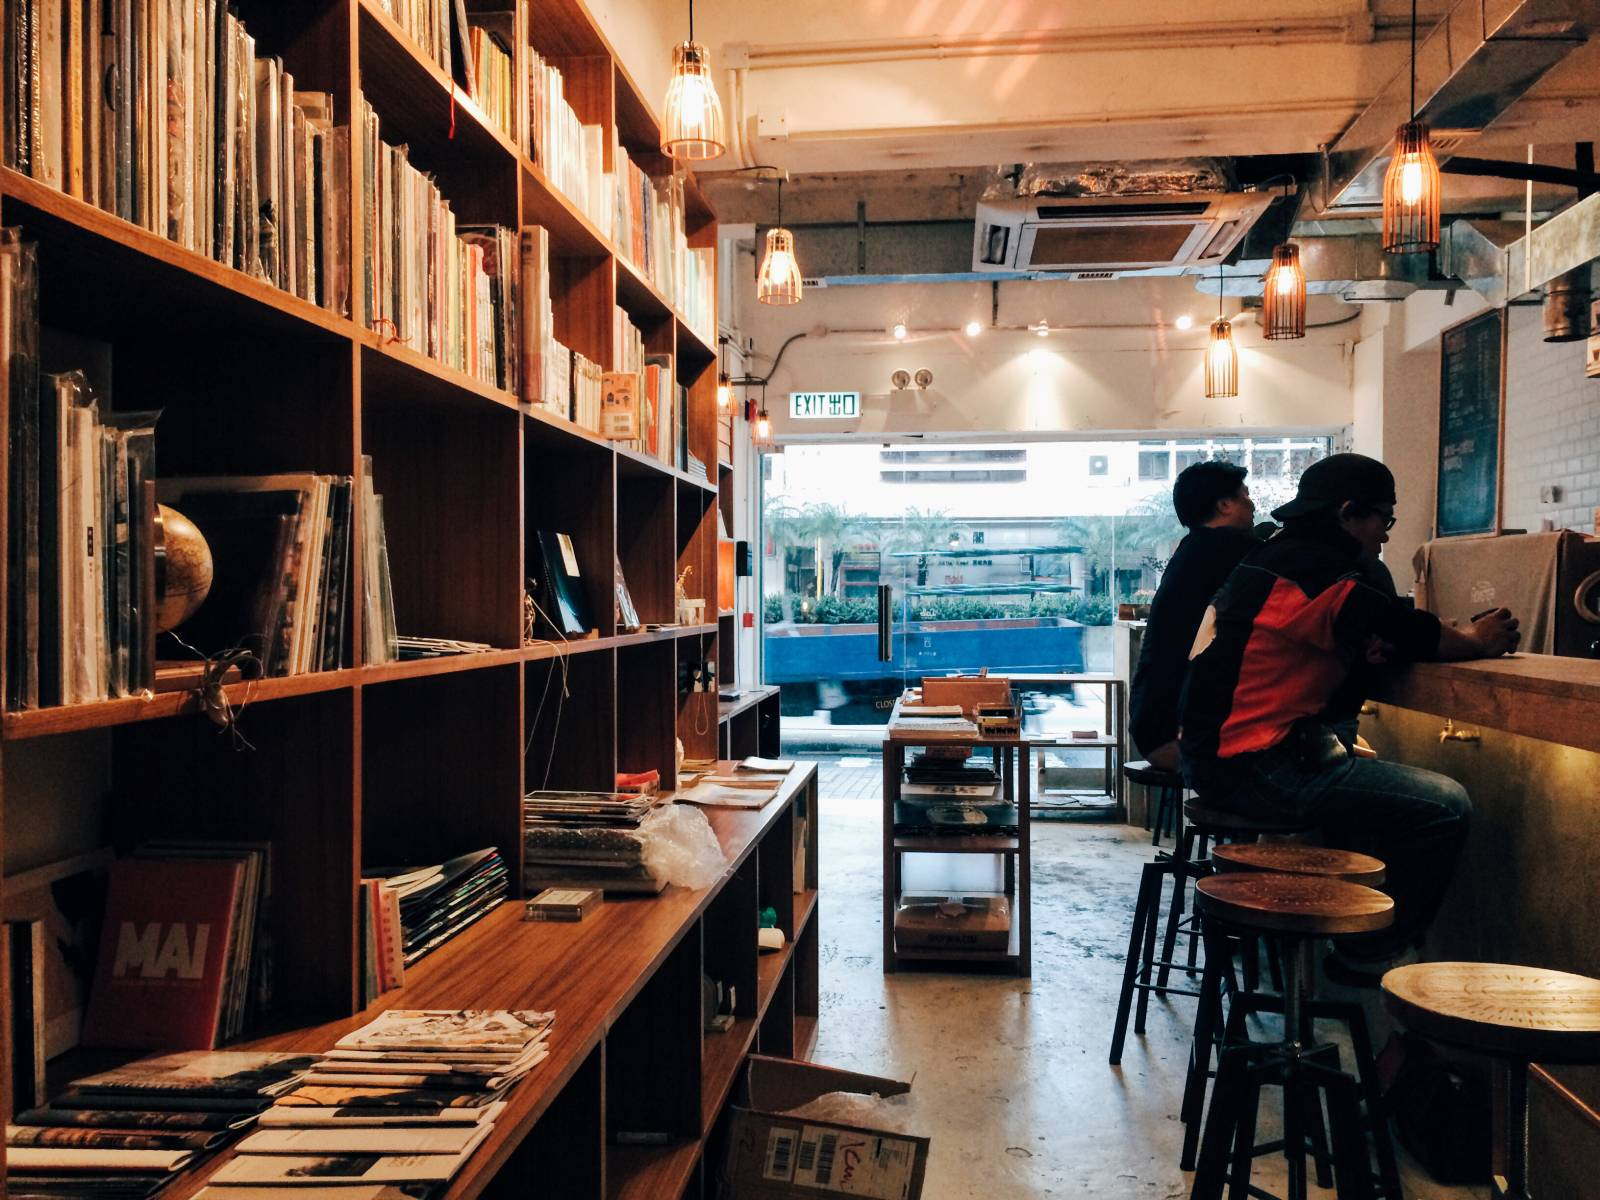 The new coffee shop is now with a bookshop area.